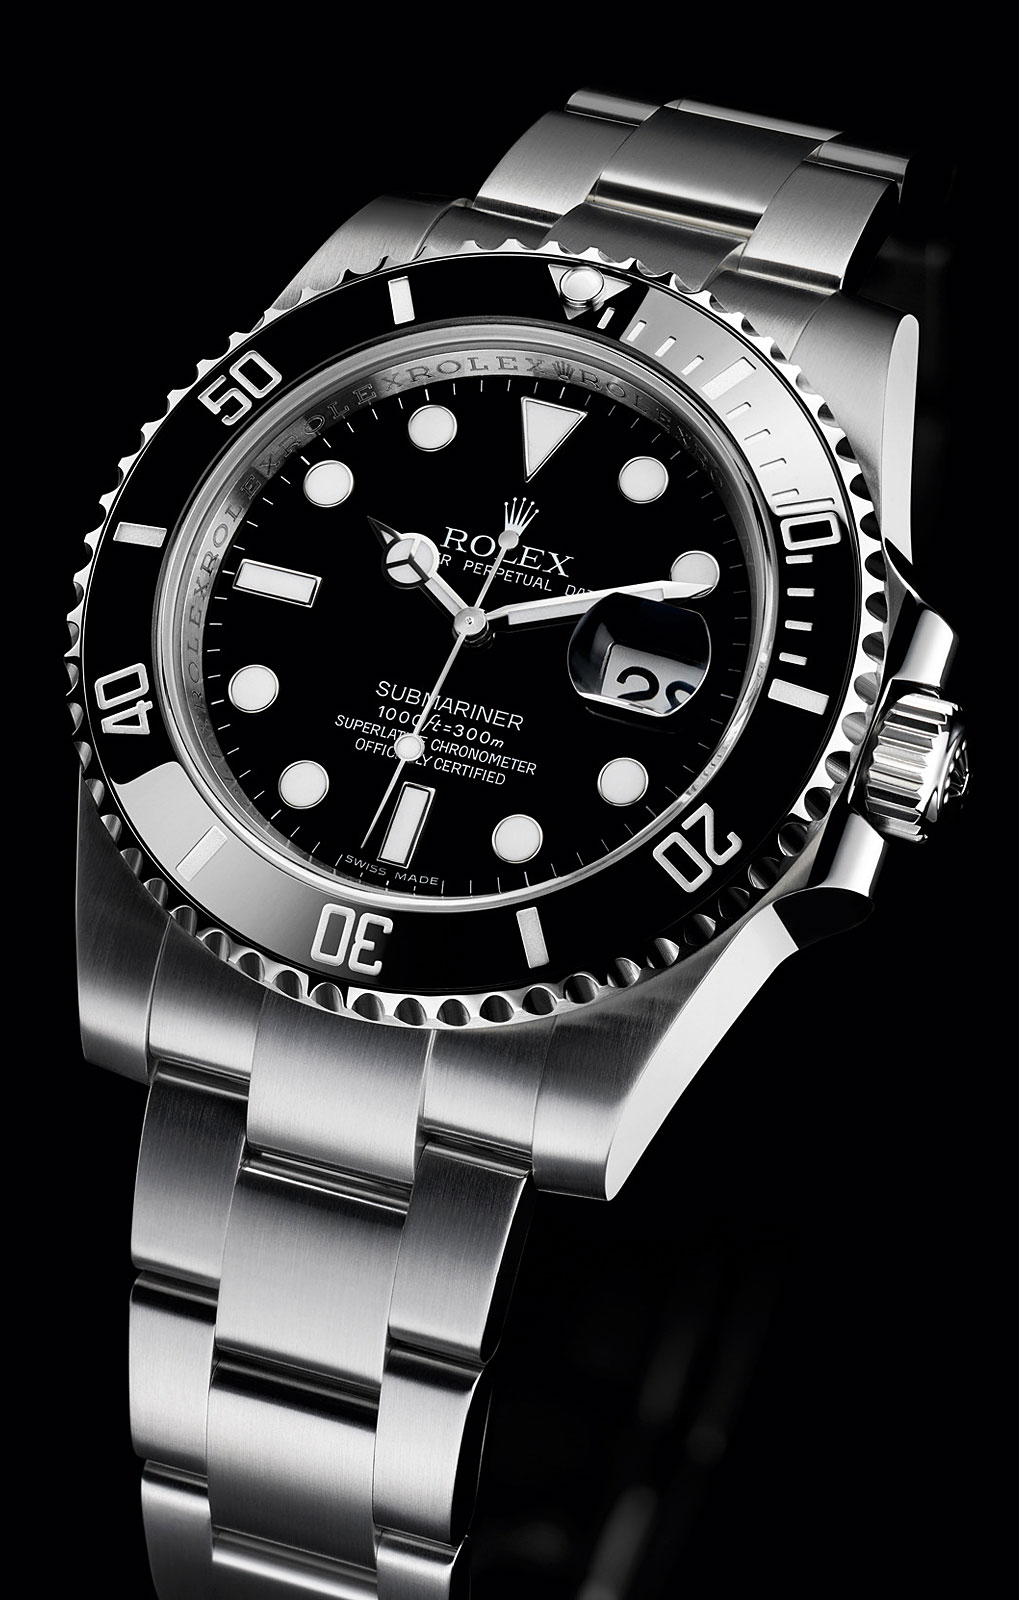 Rolex Submariner Date Stainless Steel Watch – Swiss Sports ...